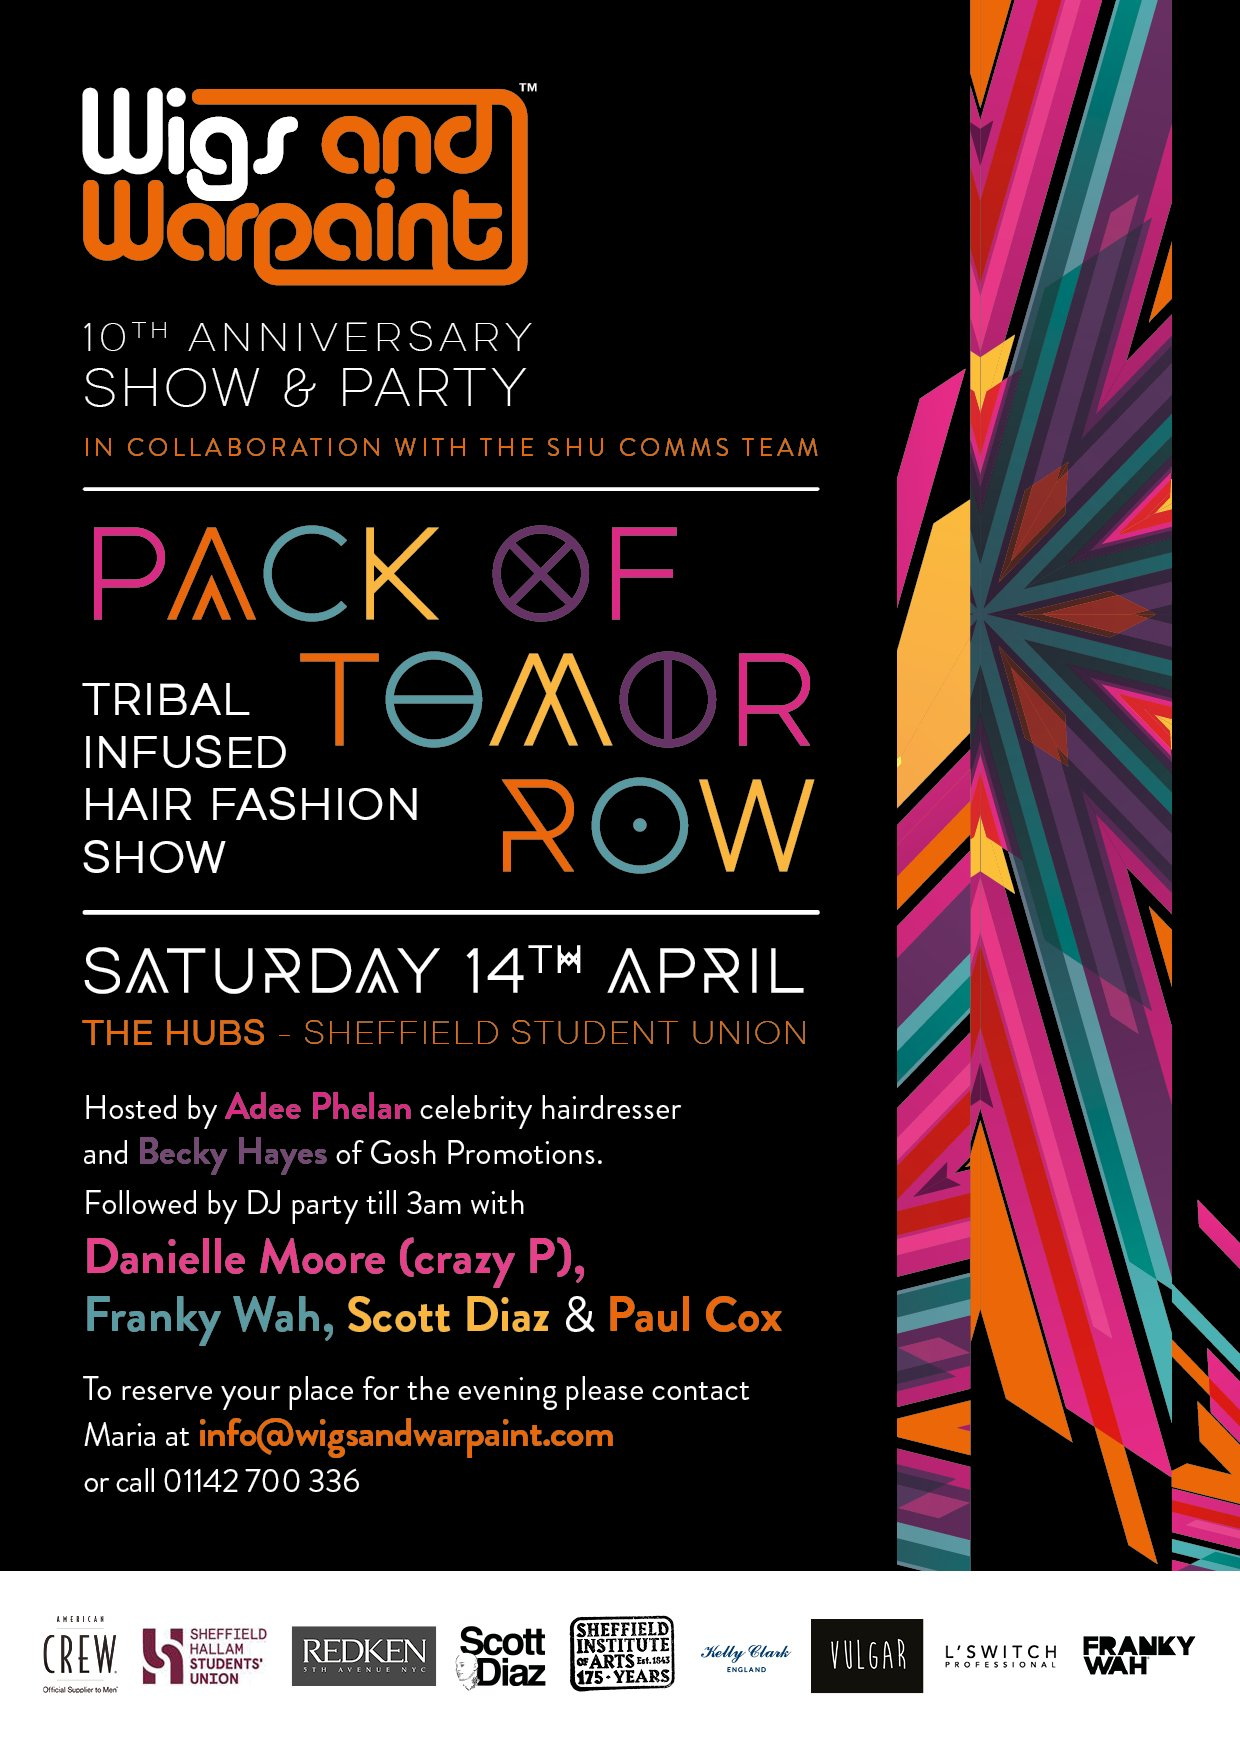 Wigs & Warpaints 10th Anniversary - Join Us At Our Catwalk Show & Party